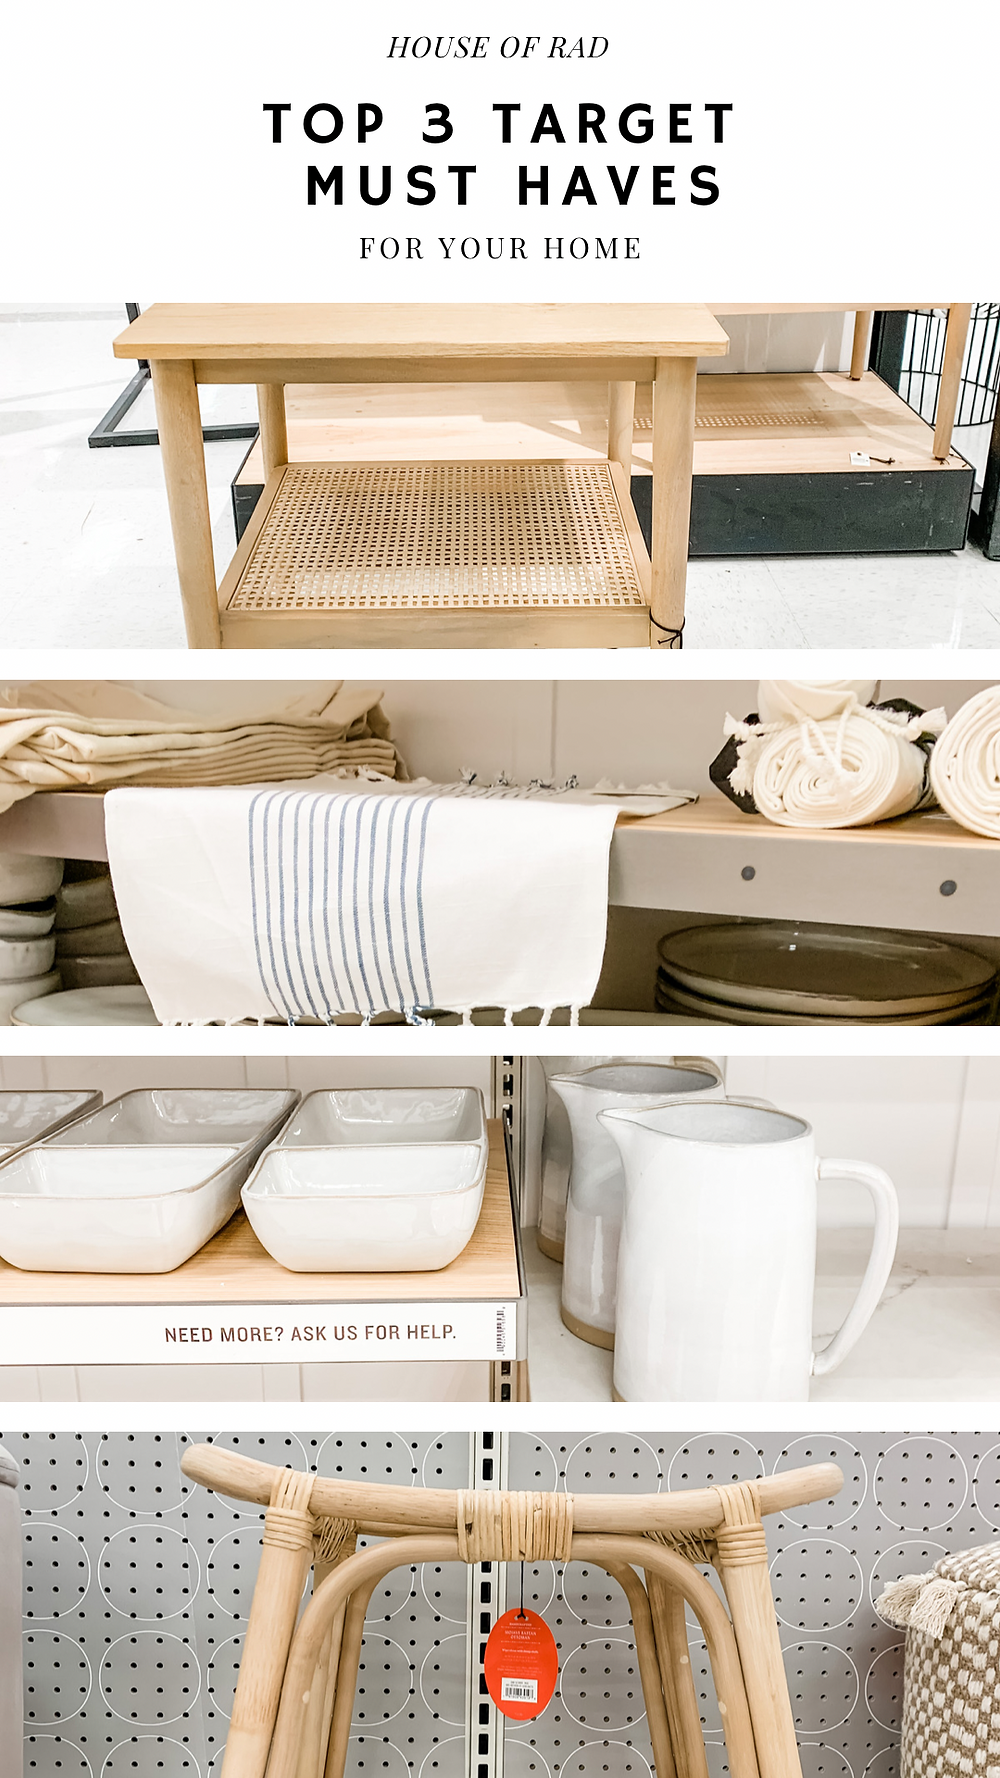 TOP 3 TARGET HOME MUST HAVES